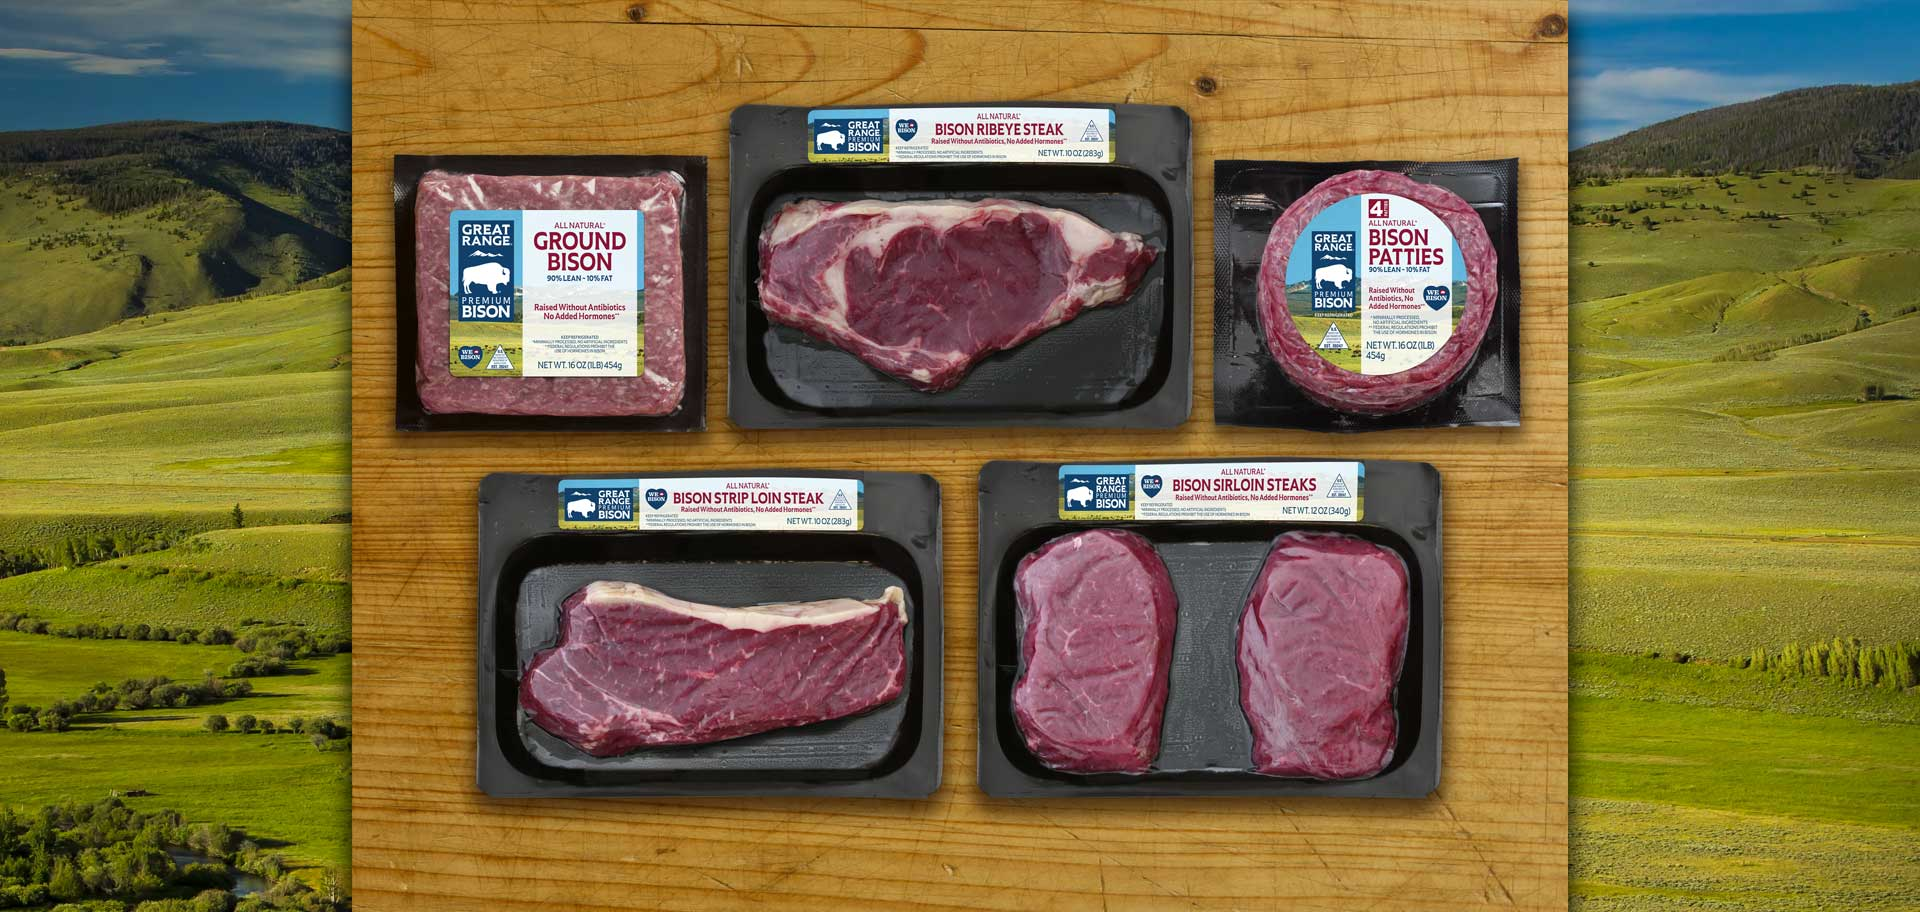 Packaged Fresh Bison Products